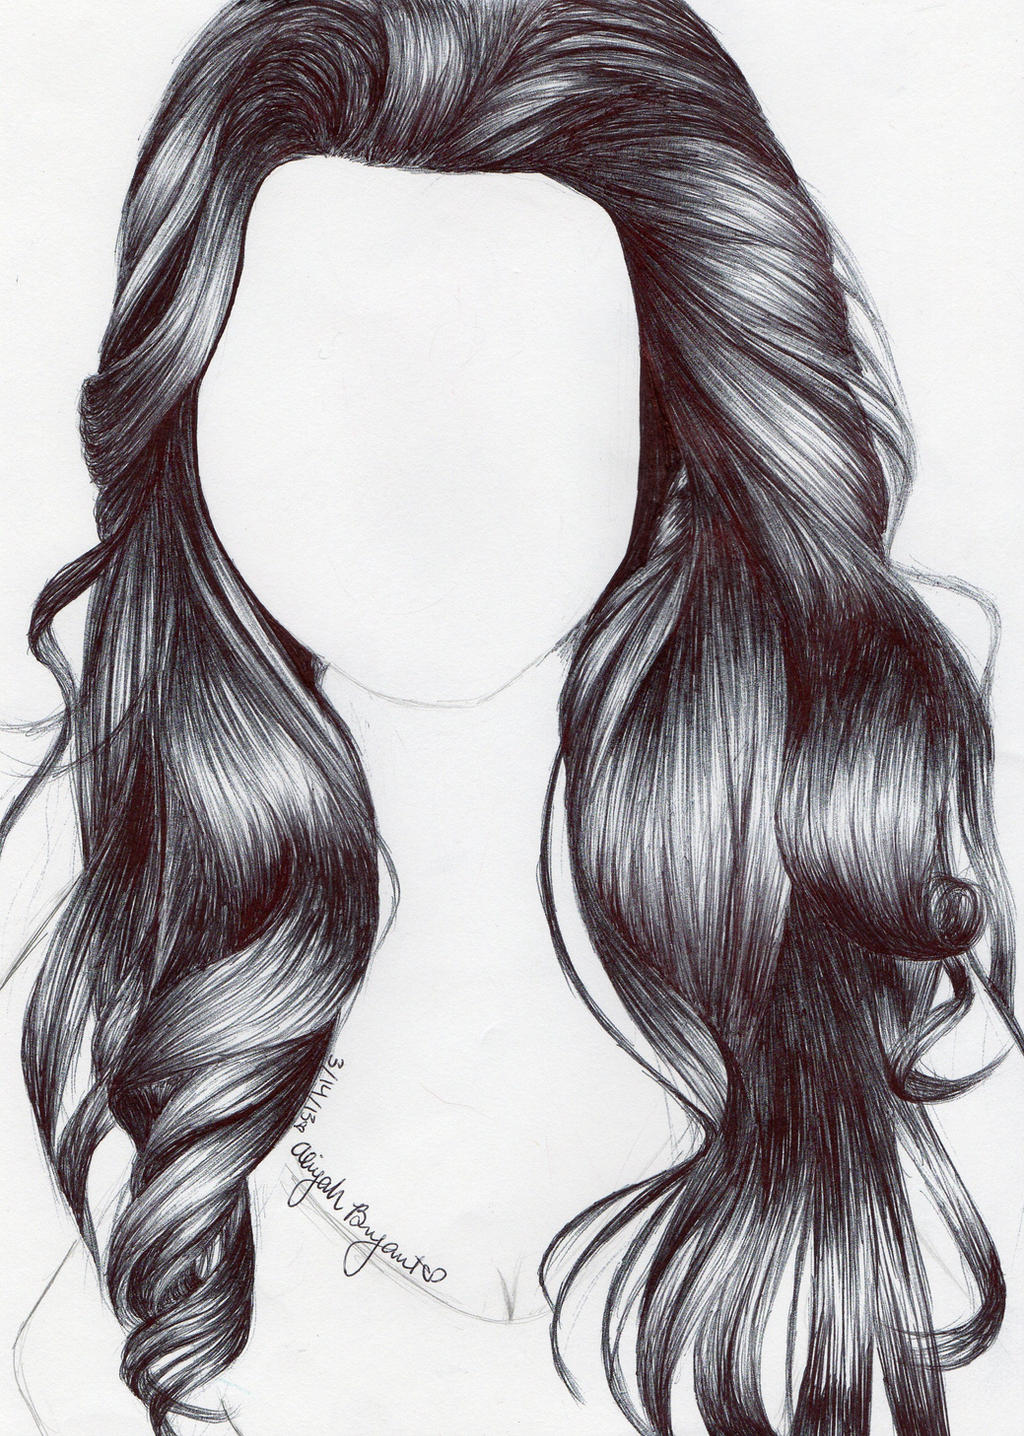 Pen Hair Study by AmateurDrawer on DeviantArt